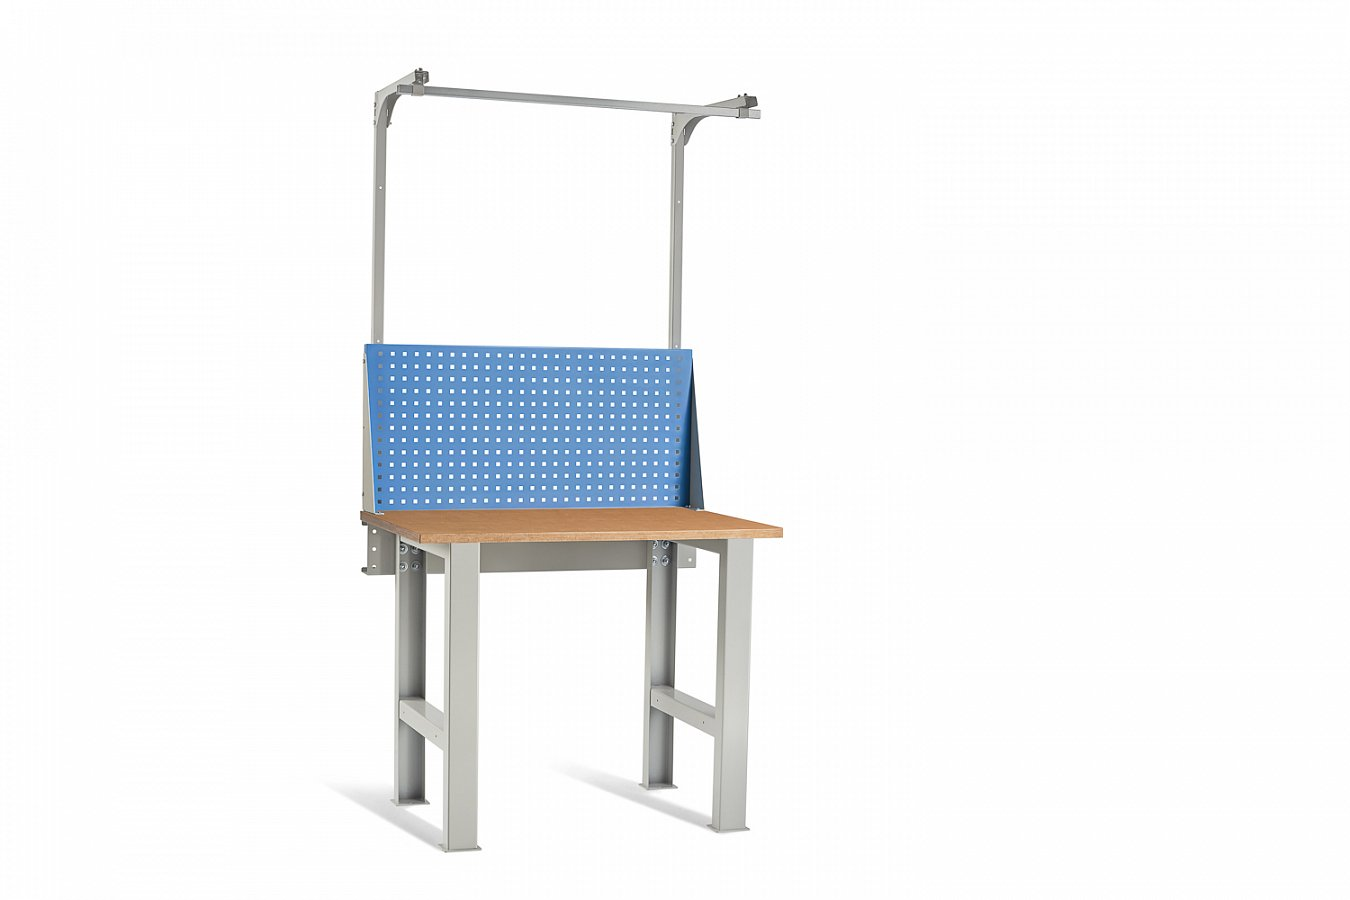 DiKom VL-100-01 Workbench (3)